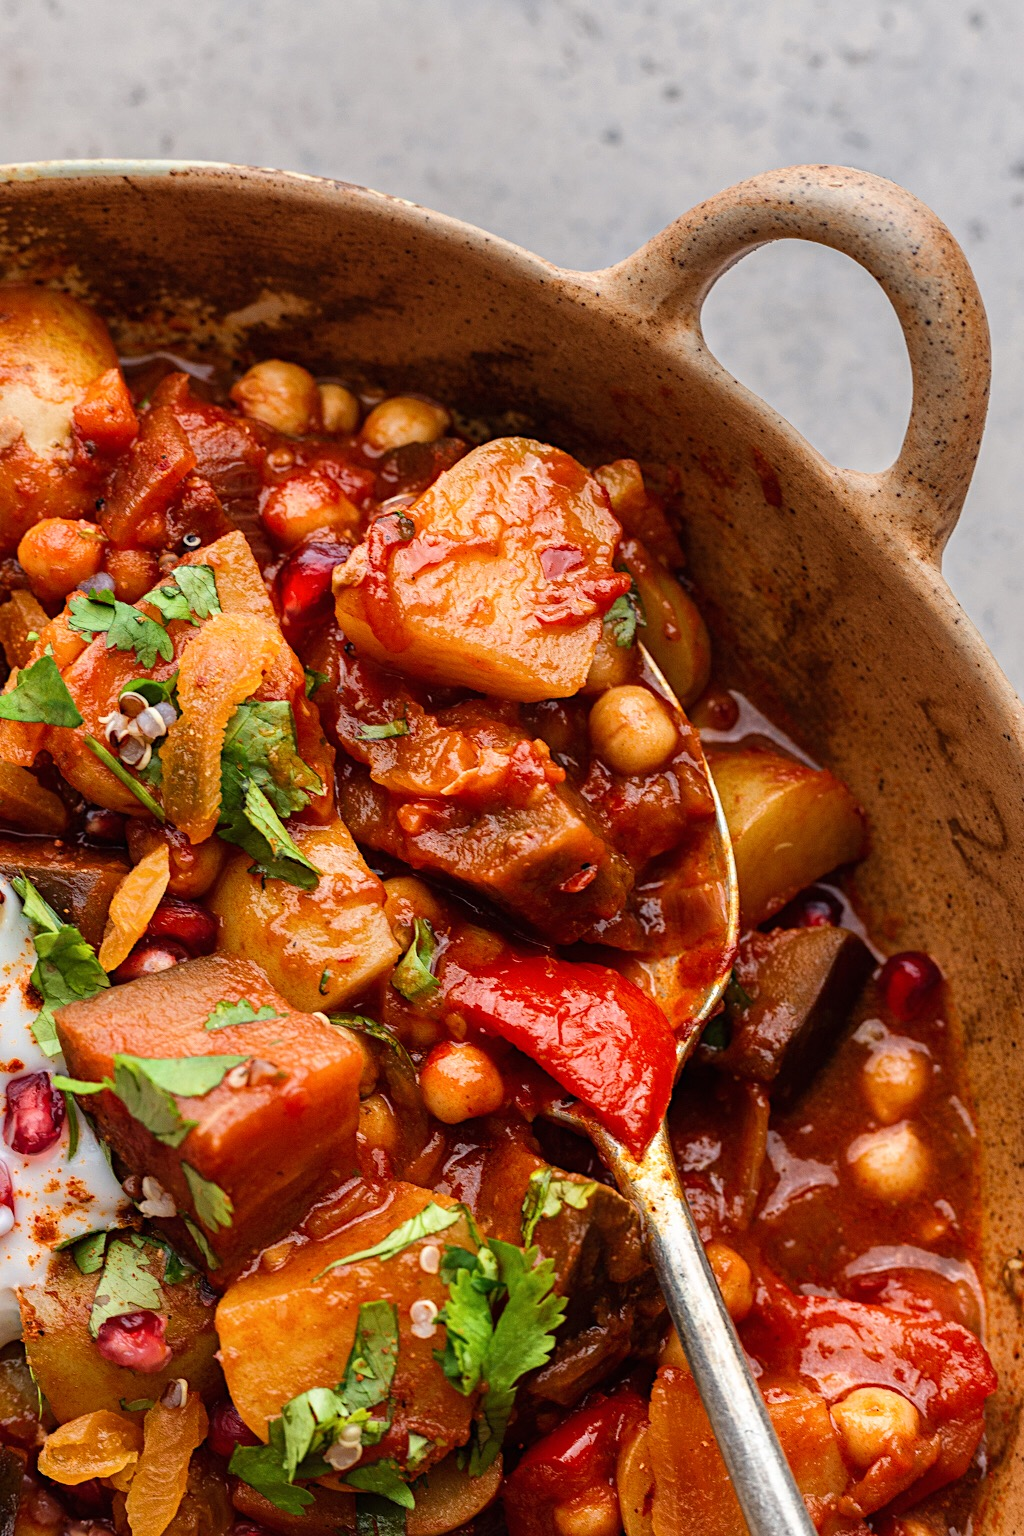 Harissa Vegetable and Chickpea Stew in Pan